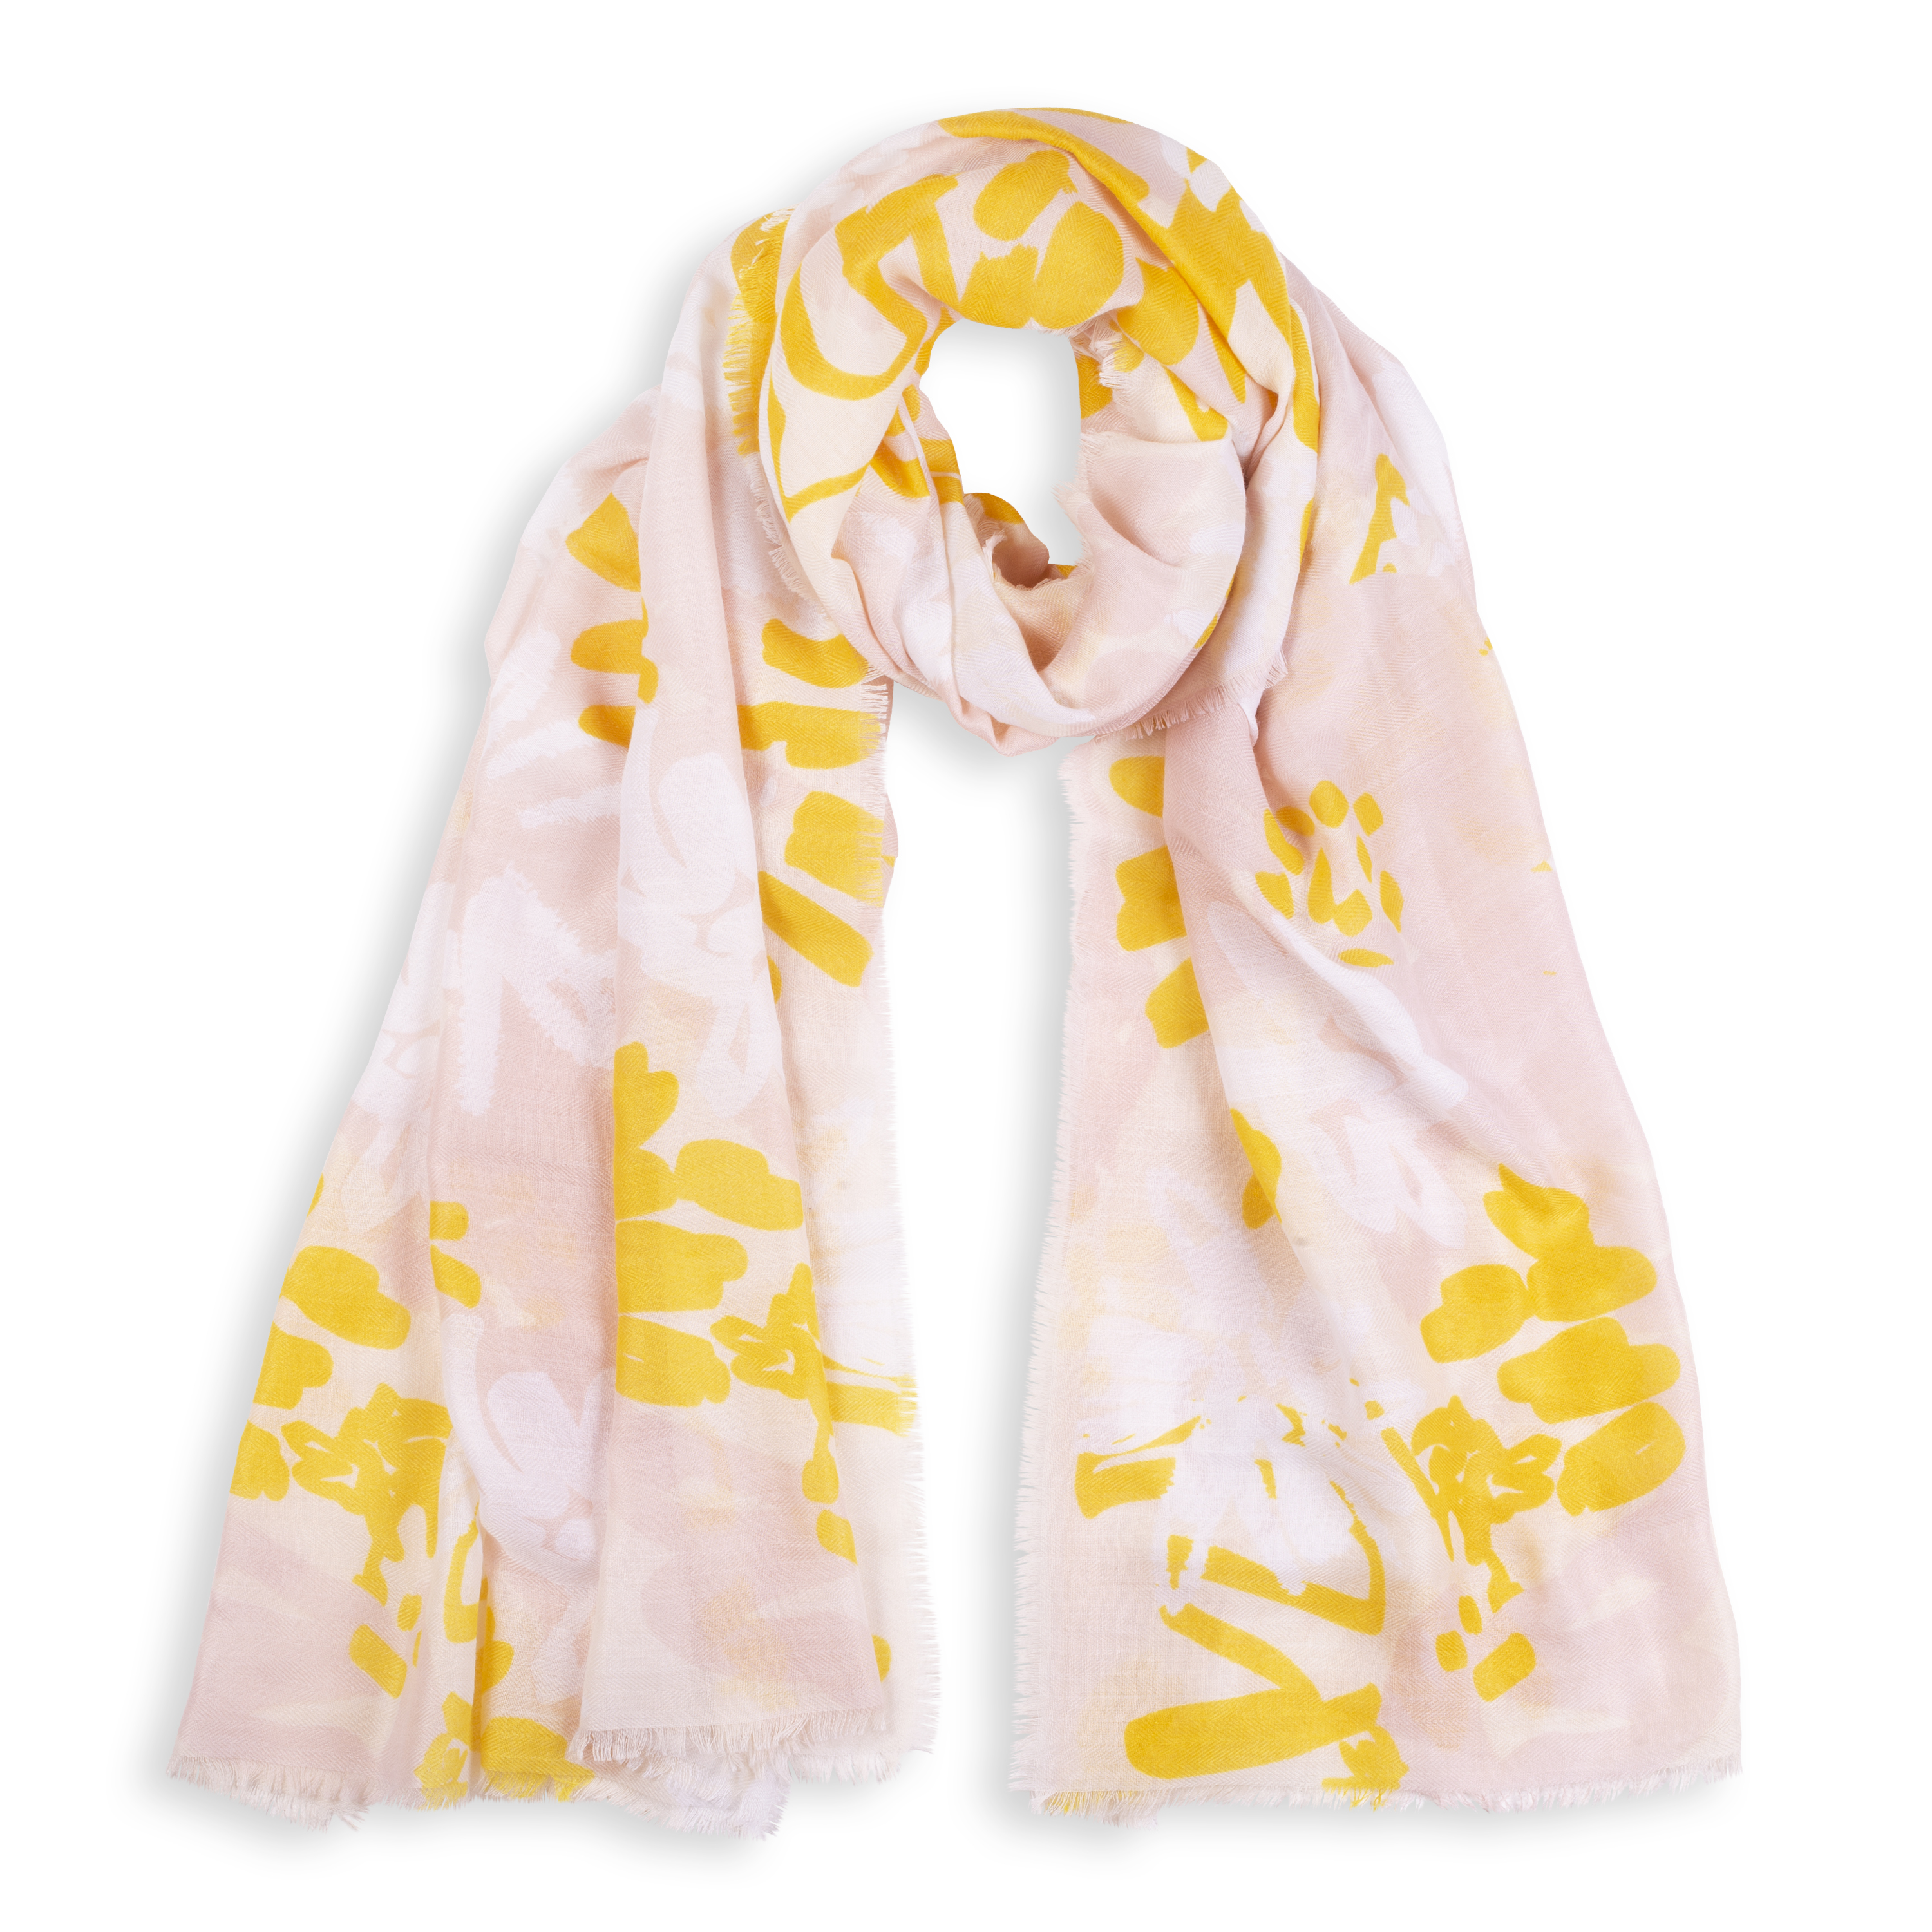 aa243b24ca436 Katie Loxton Floral Scarf - Peach and Yellow with gift bag and tag | Lily &  Stella